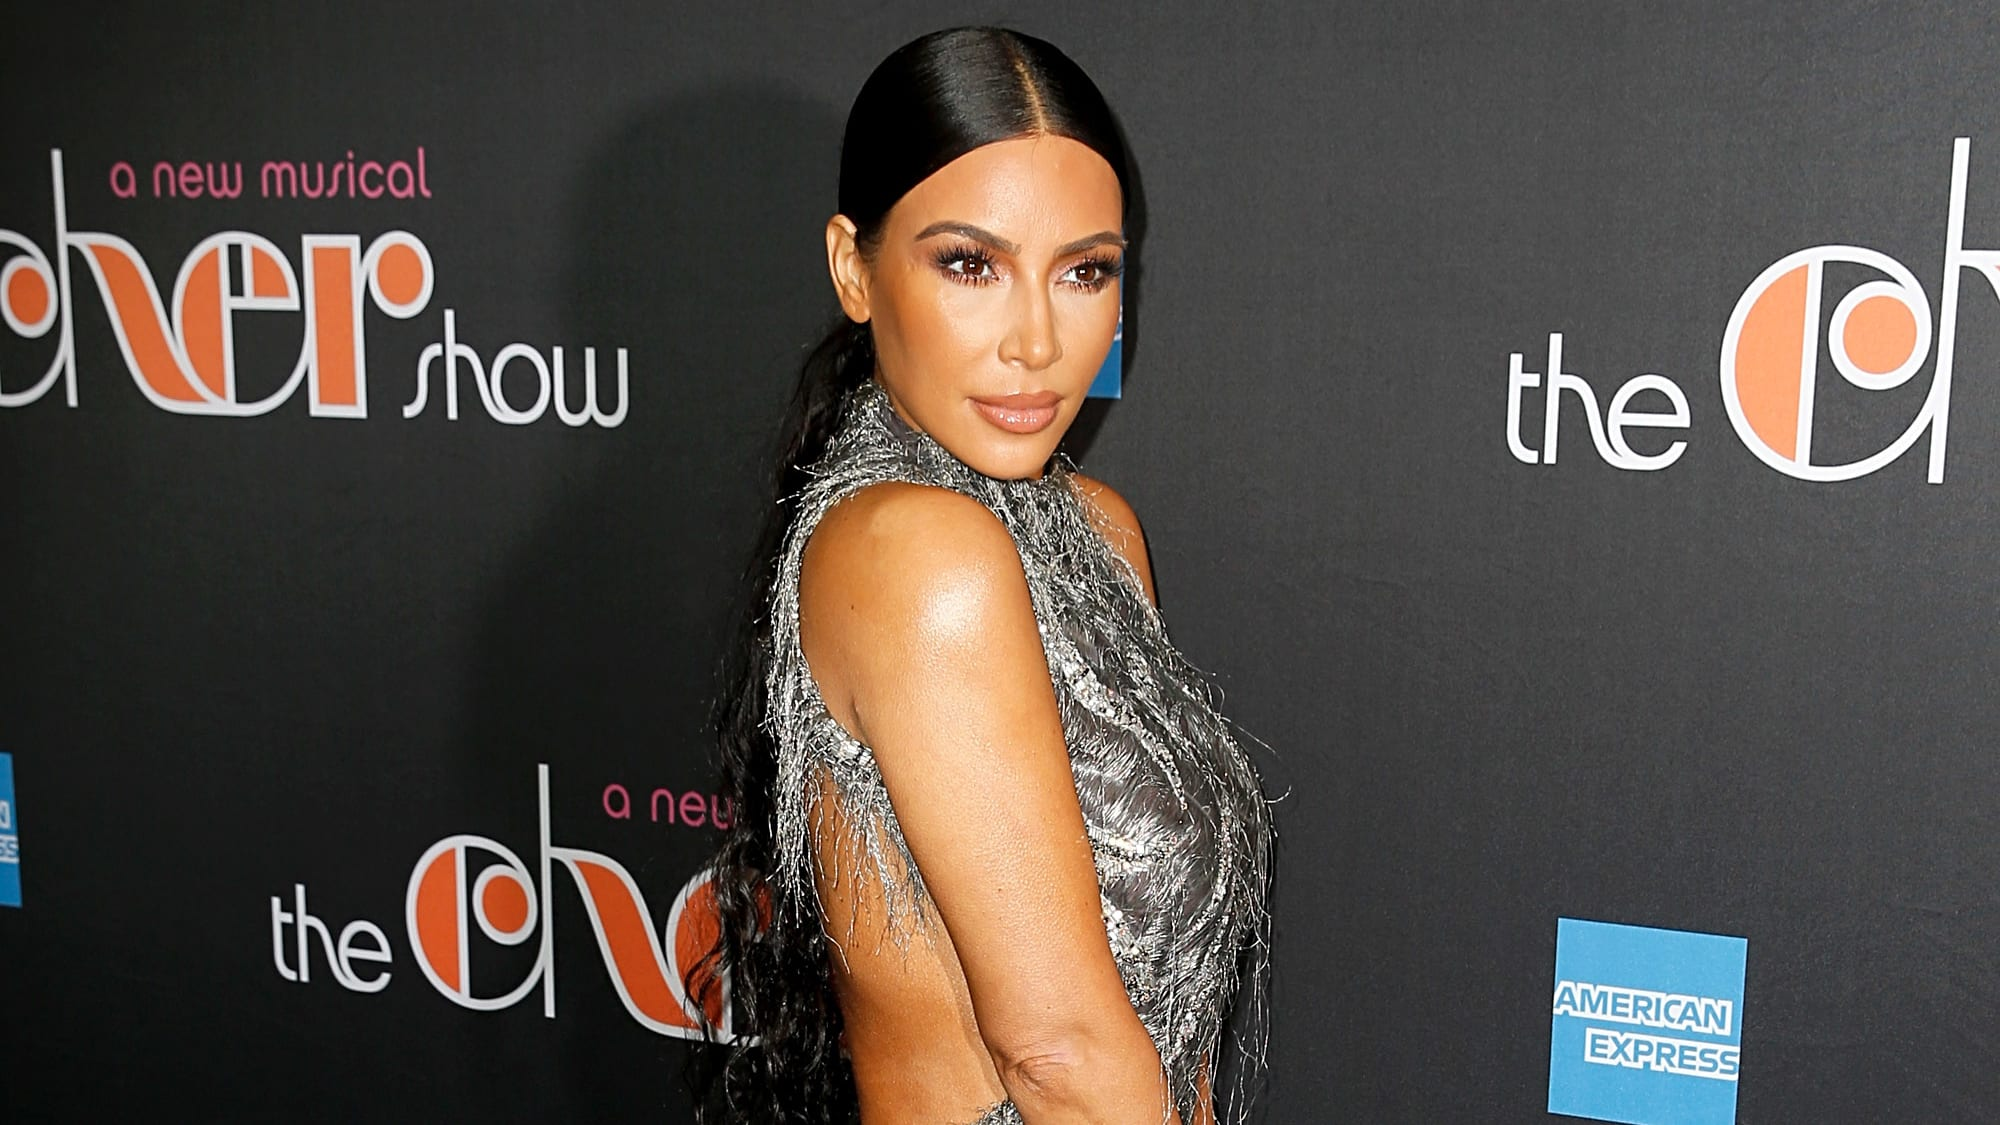 Kim Kardashian Defends Choice to Become Lawyer in Lengthy Instagram Post